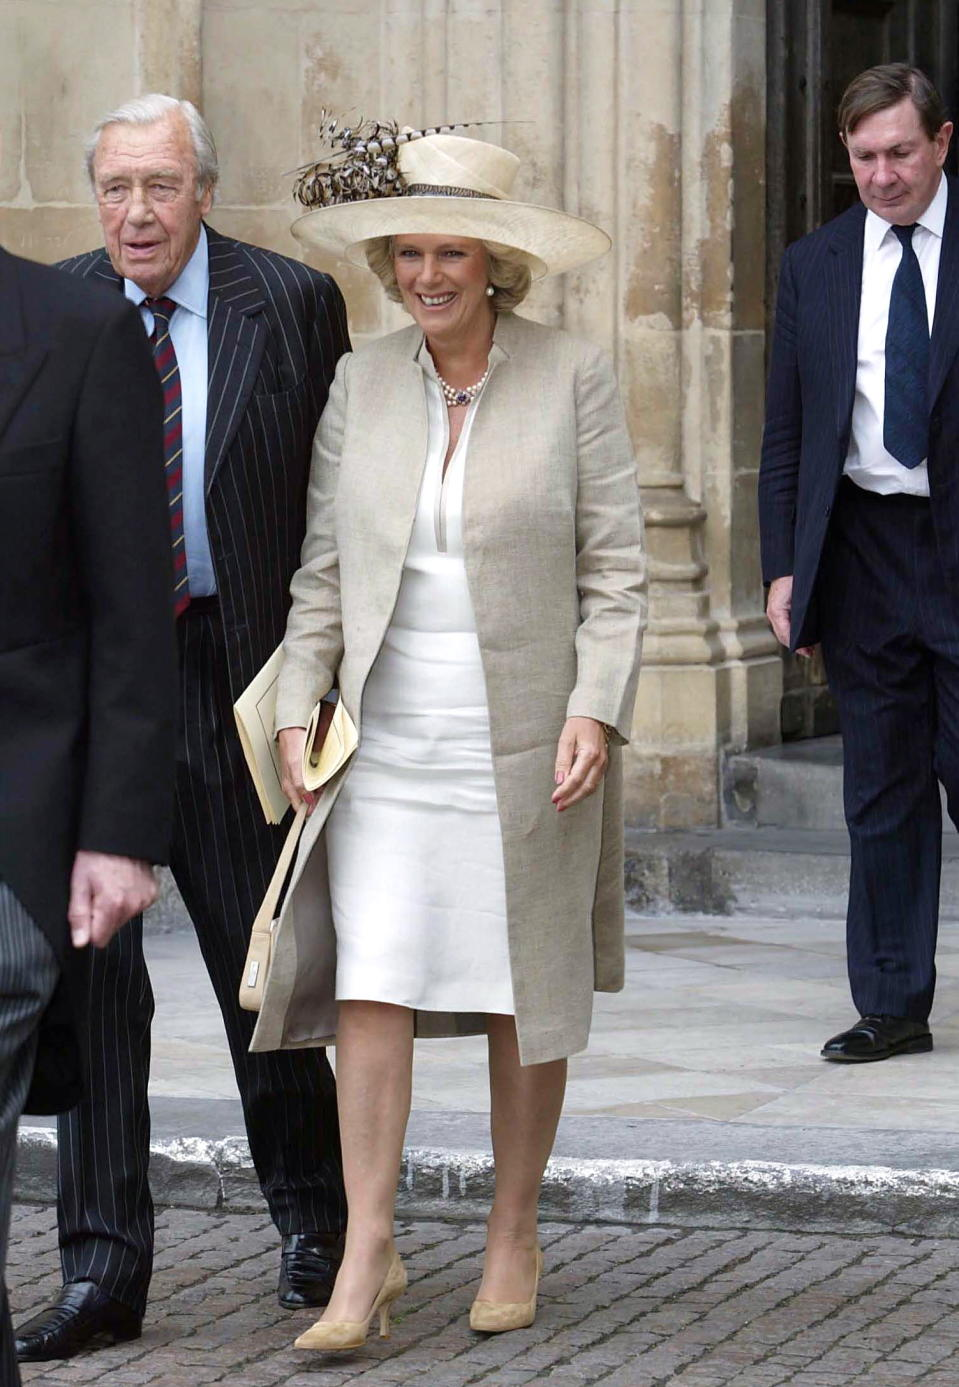 LONDON, UNITED KINGDOM - JUNE 02:  Camilla Parker-bowles With Her Father, Major Bruce Shand,  Attending A Special Service To Commemorate The 50th Anniversary Of The Coronation At Westminster Abbey.at Right Behind Them Is The Lord Chancellor,lord Irvine.  (Photo by Tim Graham Picture Library/Getty Images)